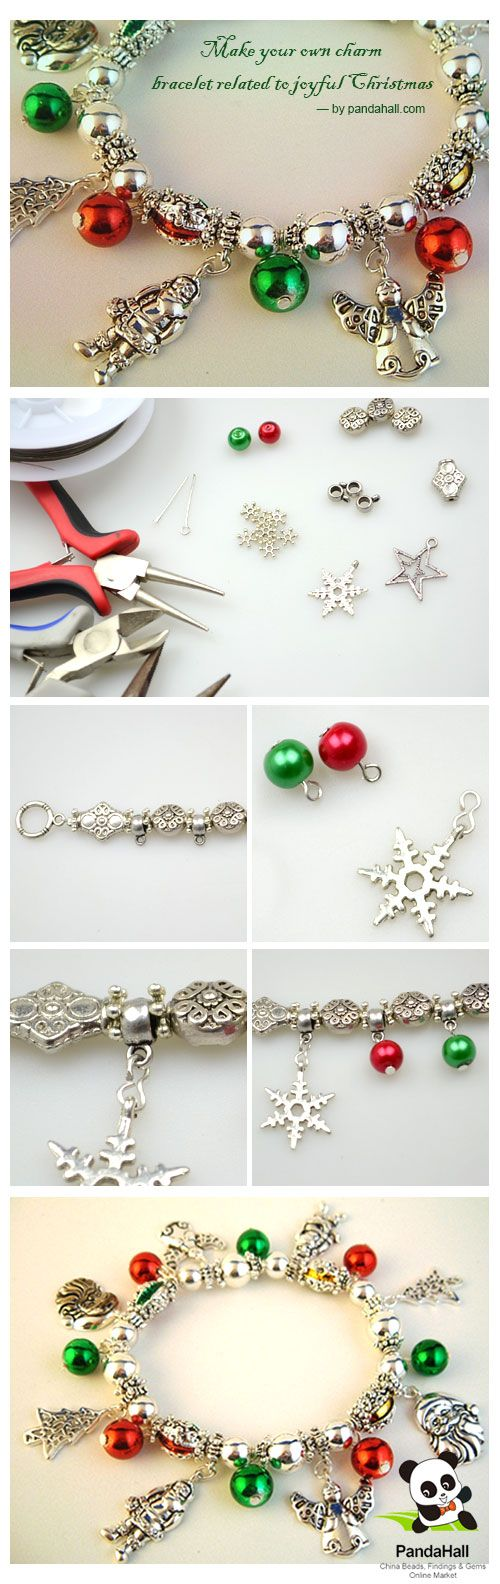 An easy example show you how the project make your own charm bracelet is done! And for the forthcoming Christmas, with this delectable Christmas charm bracelet, you can steal all the spotlights and gather other's envious eyesight with you!